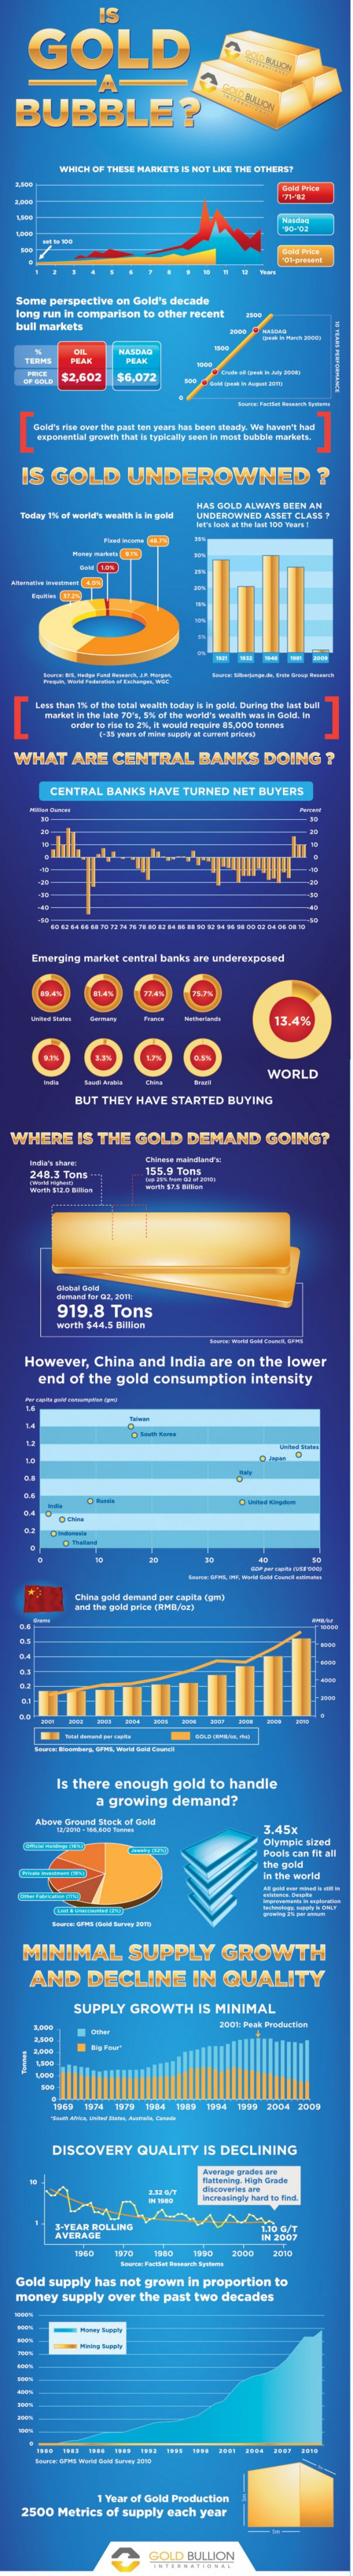 Gold (GLD) Is A Bubble? Infographic